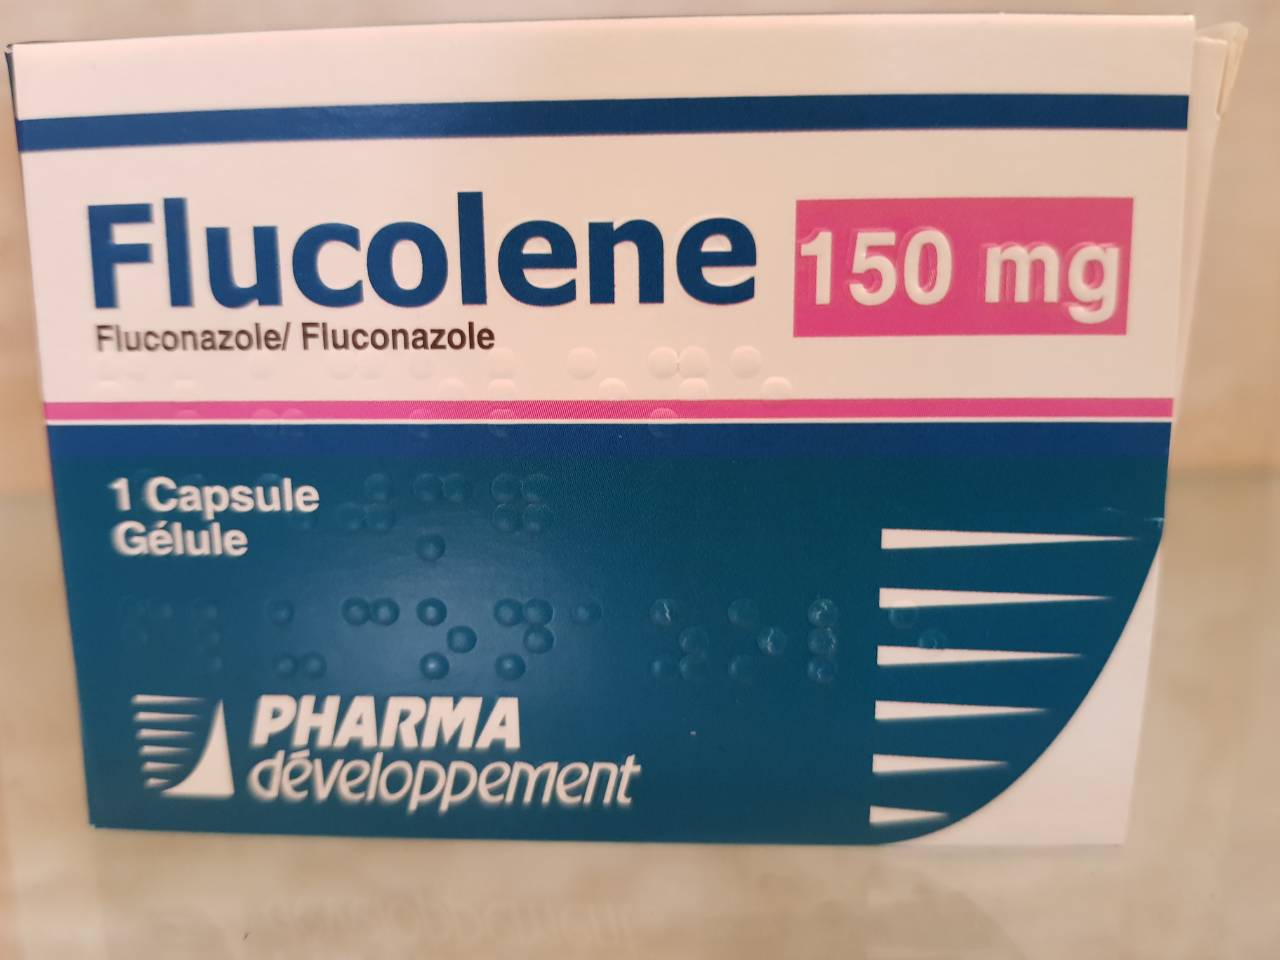 Flucolene 200 mg